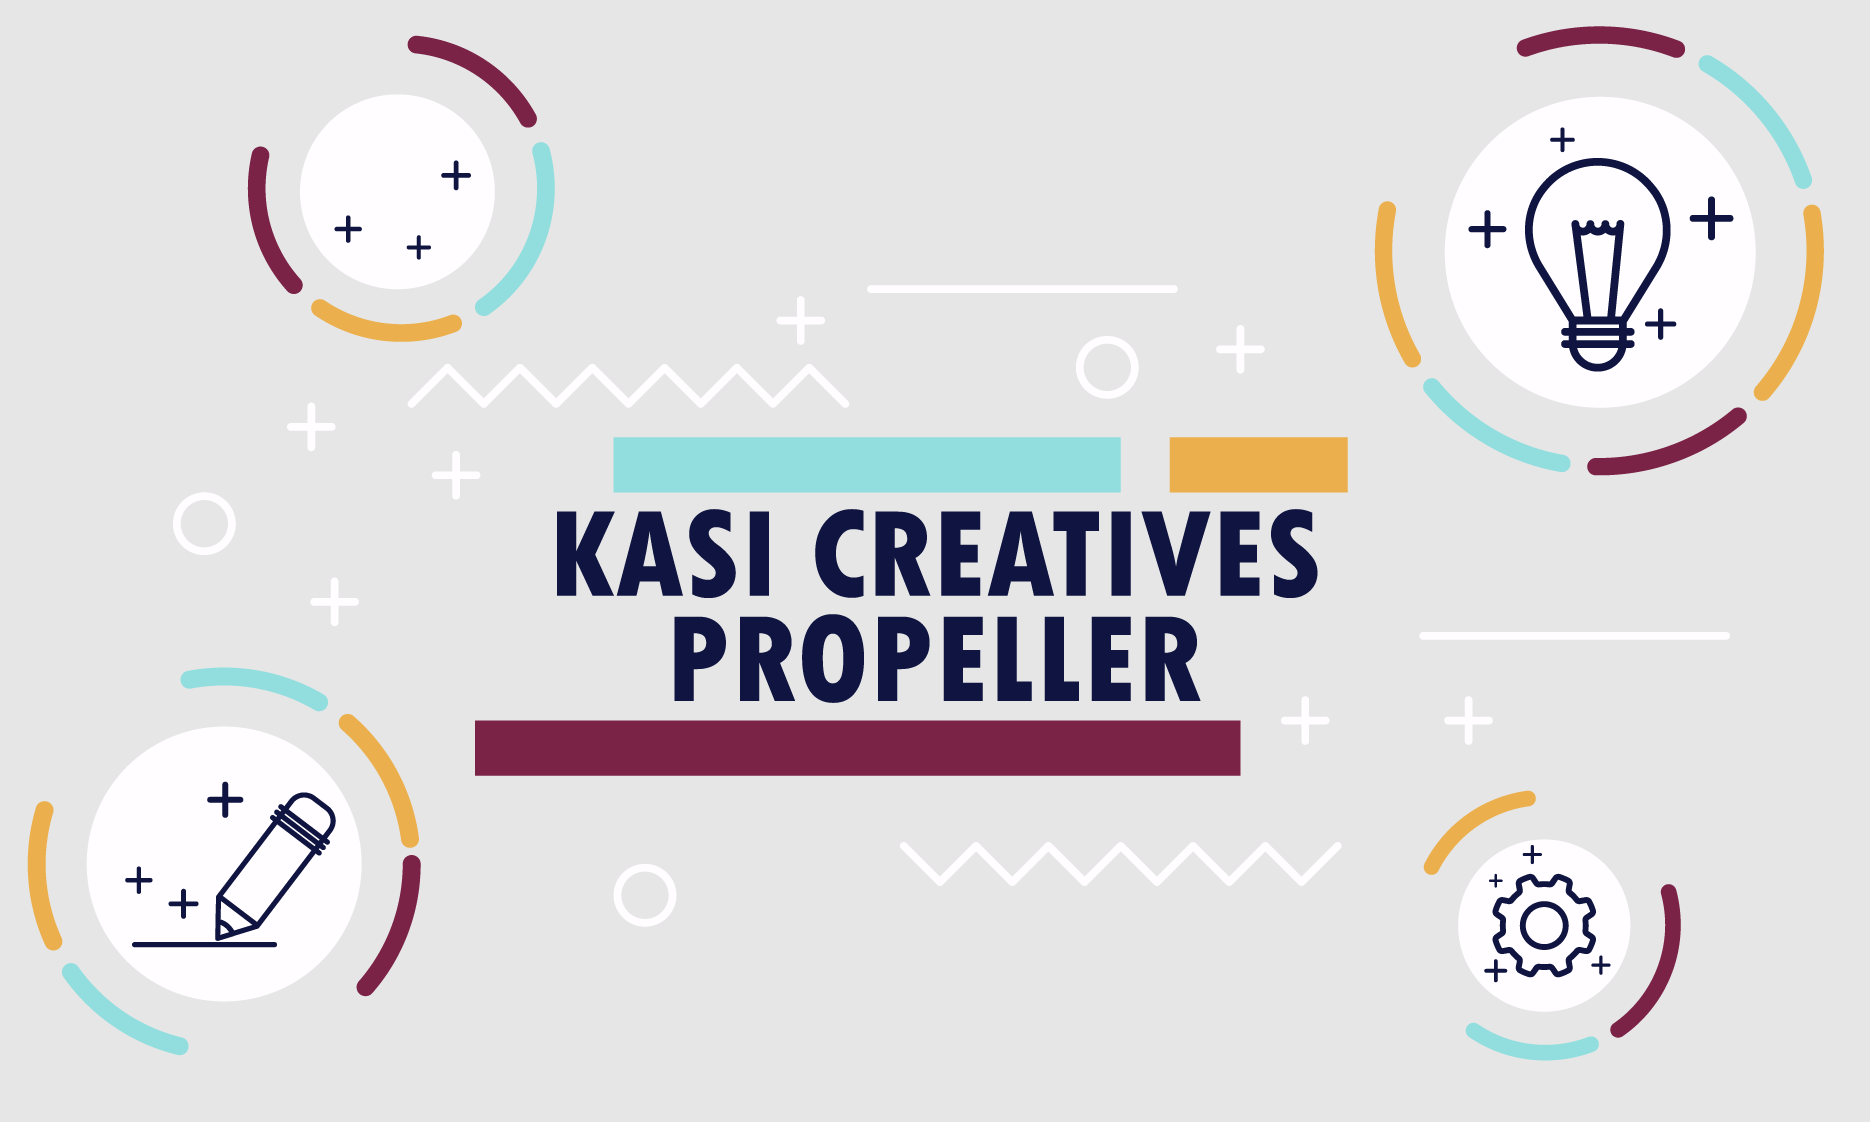 Kasi Creatives Propeller